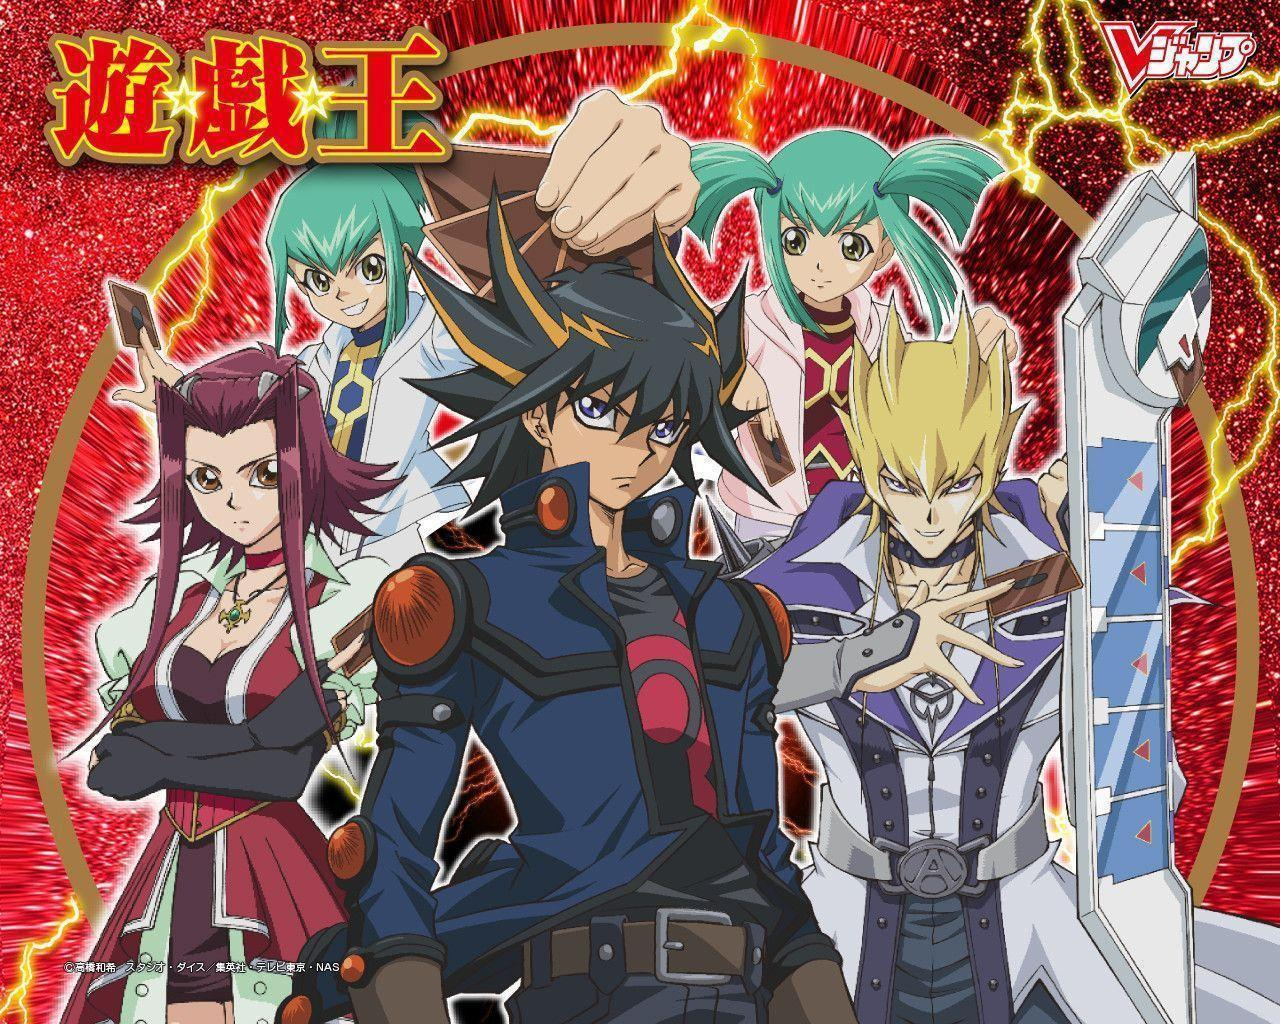 Yu-Gi-Oh 5Ds Wallpapers - Wallpaper Cave  Yu-Gi-Oh 5Ds Wa...